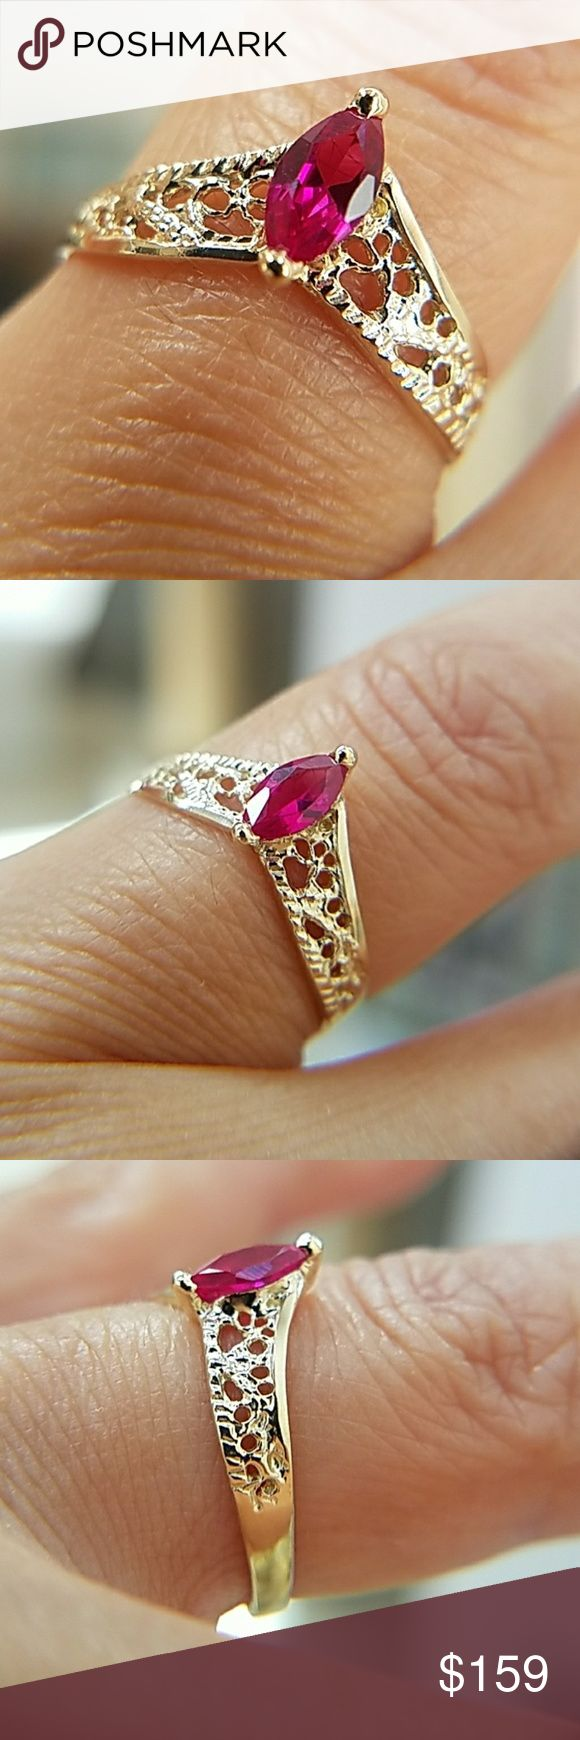 14k Yellow Gold Ruby Engagement Filigree Ring Dainty 14k Yellow hollow Gold Synthetic Ruby ladies  Engagement Promise Filigree Ring Available in sizes 3 4 5 6 7 8 9. Item#RG2208-1.37-42 Jewelry Rings